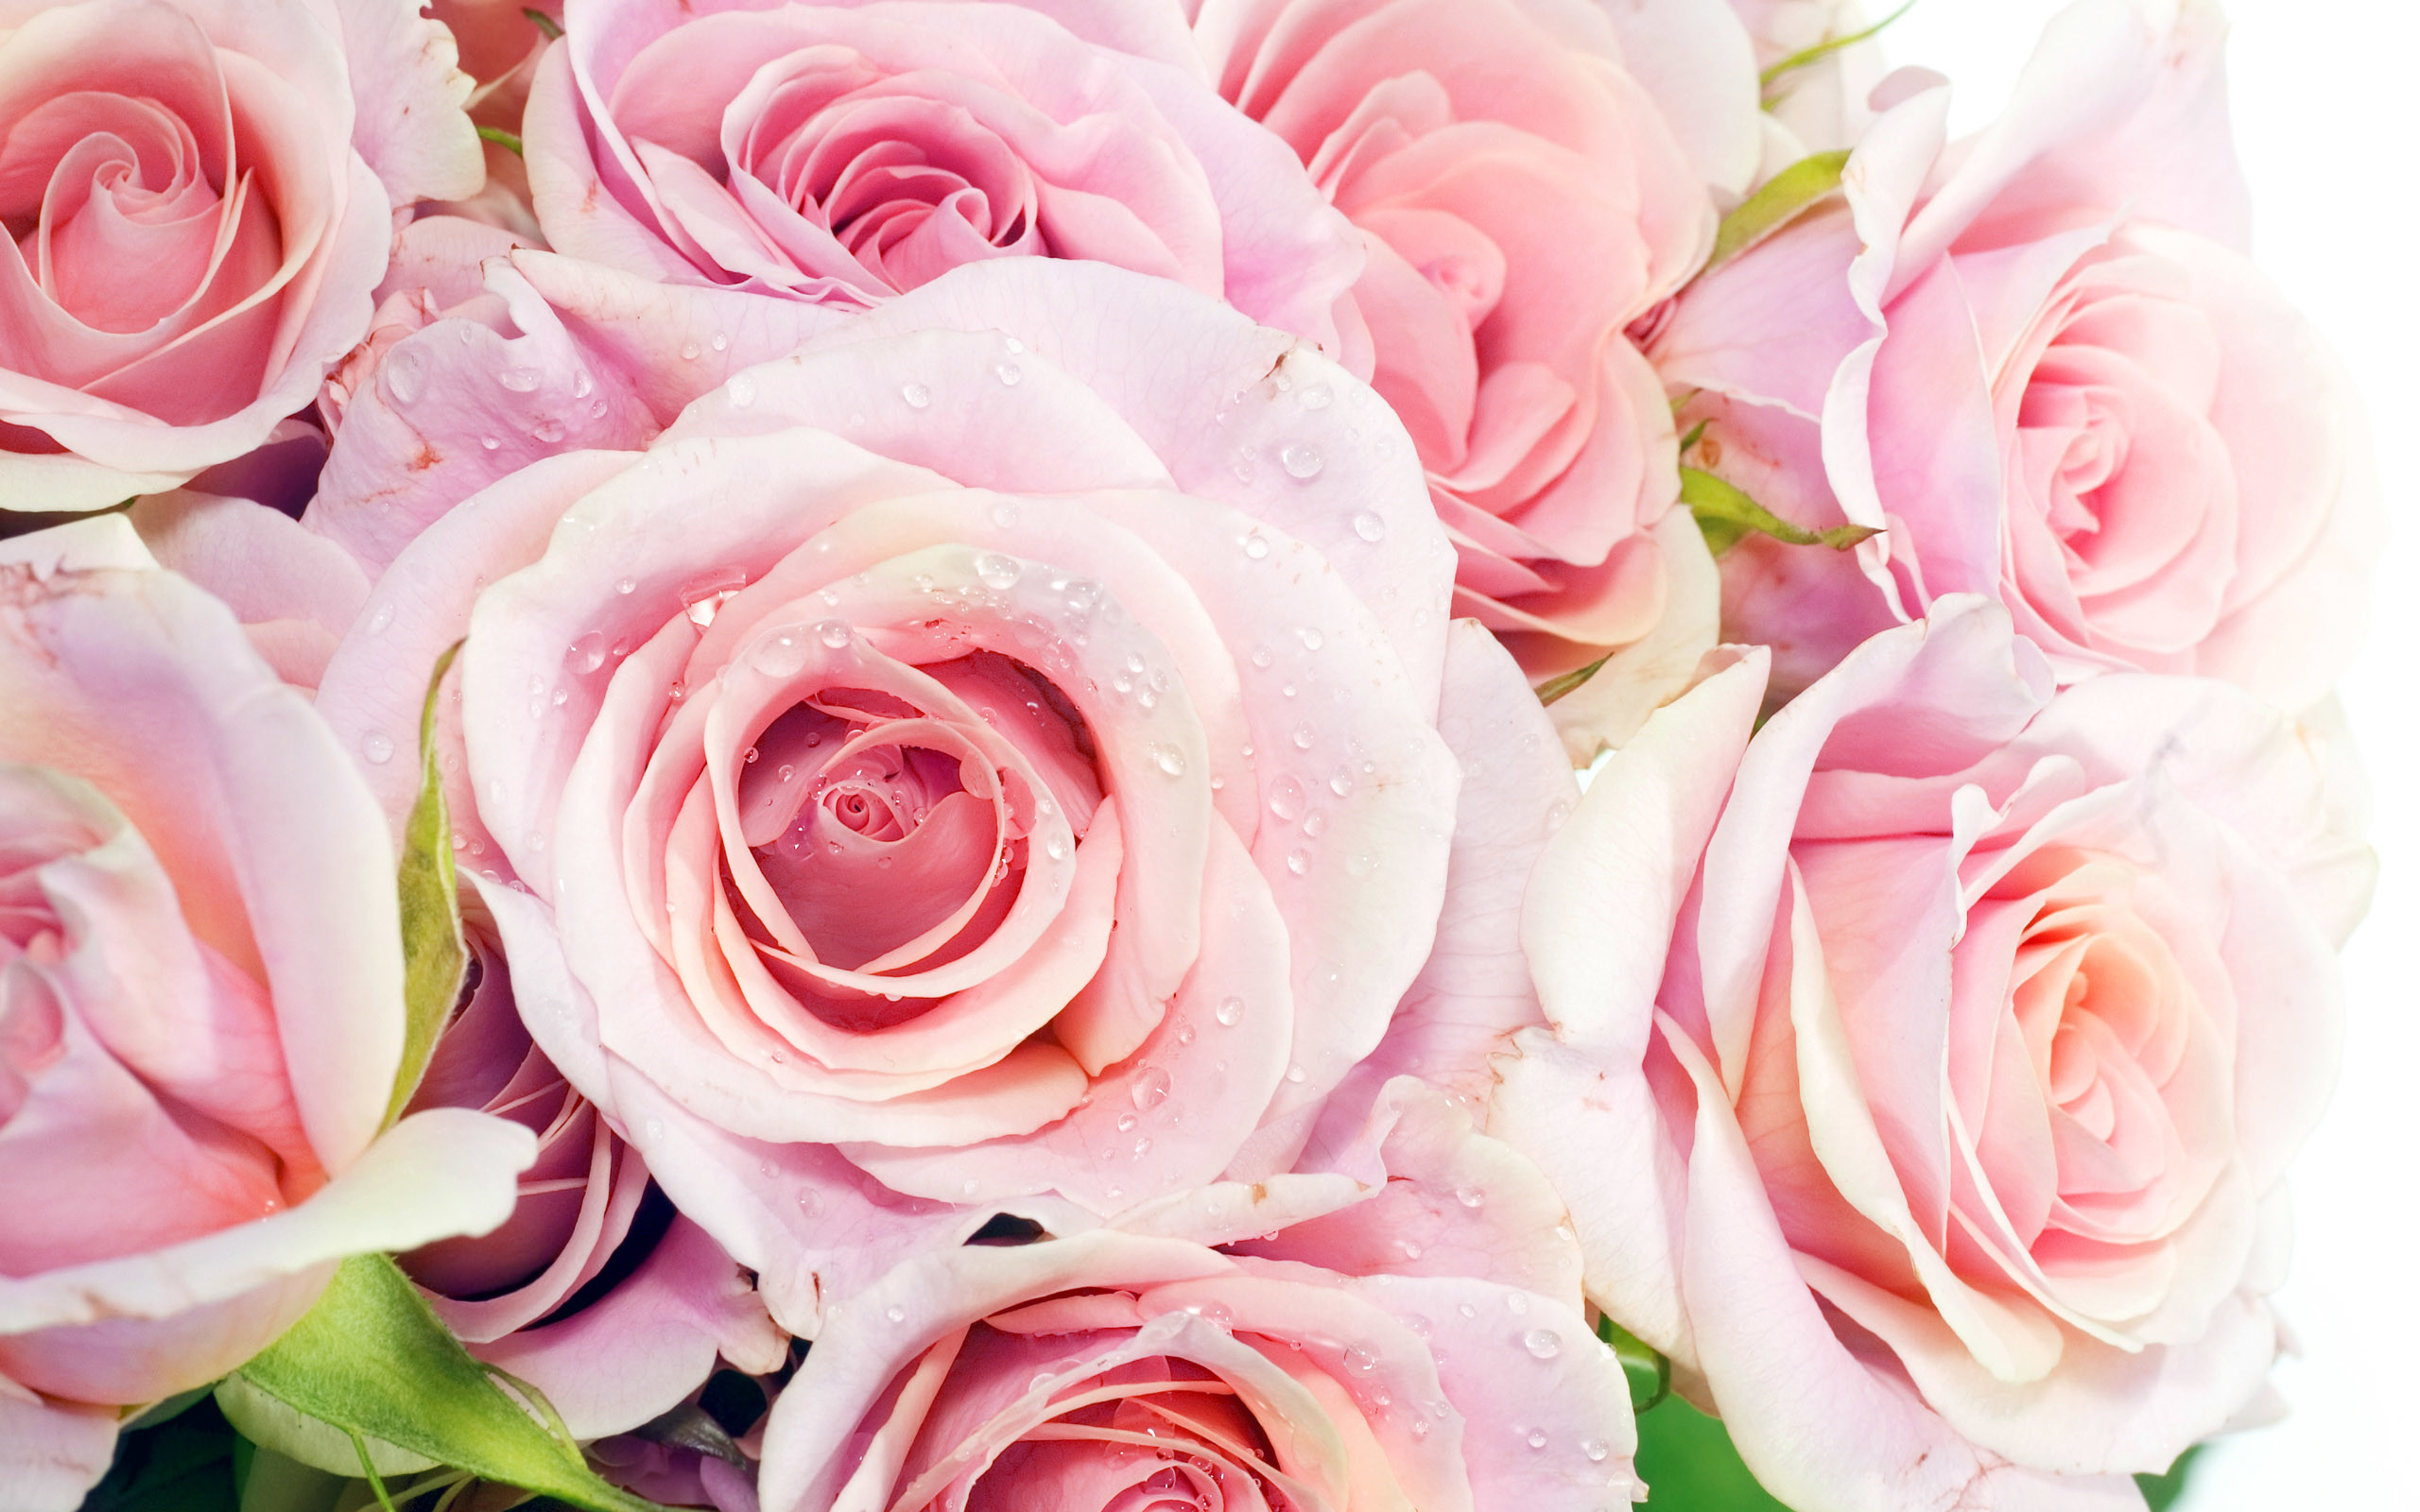 Res: 2560x1600, Roses images Pretty Pink Roses HD wallpaper and background photos